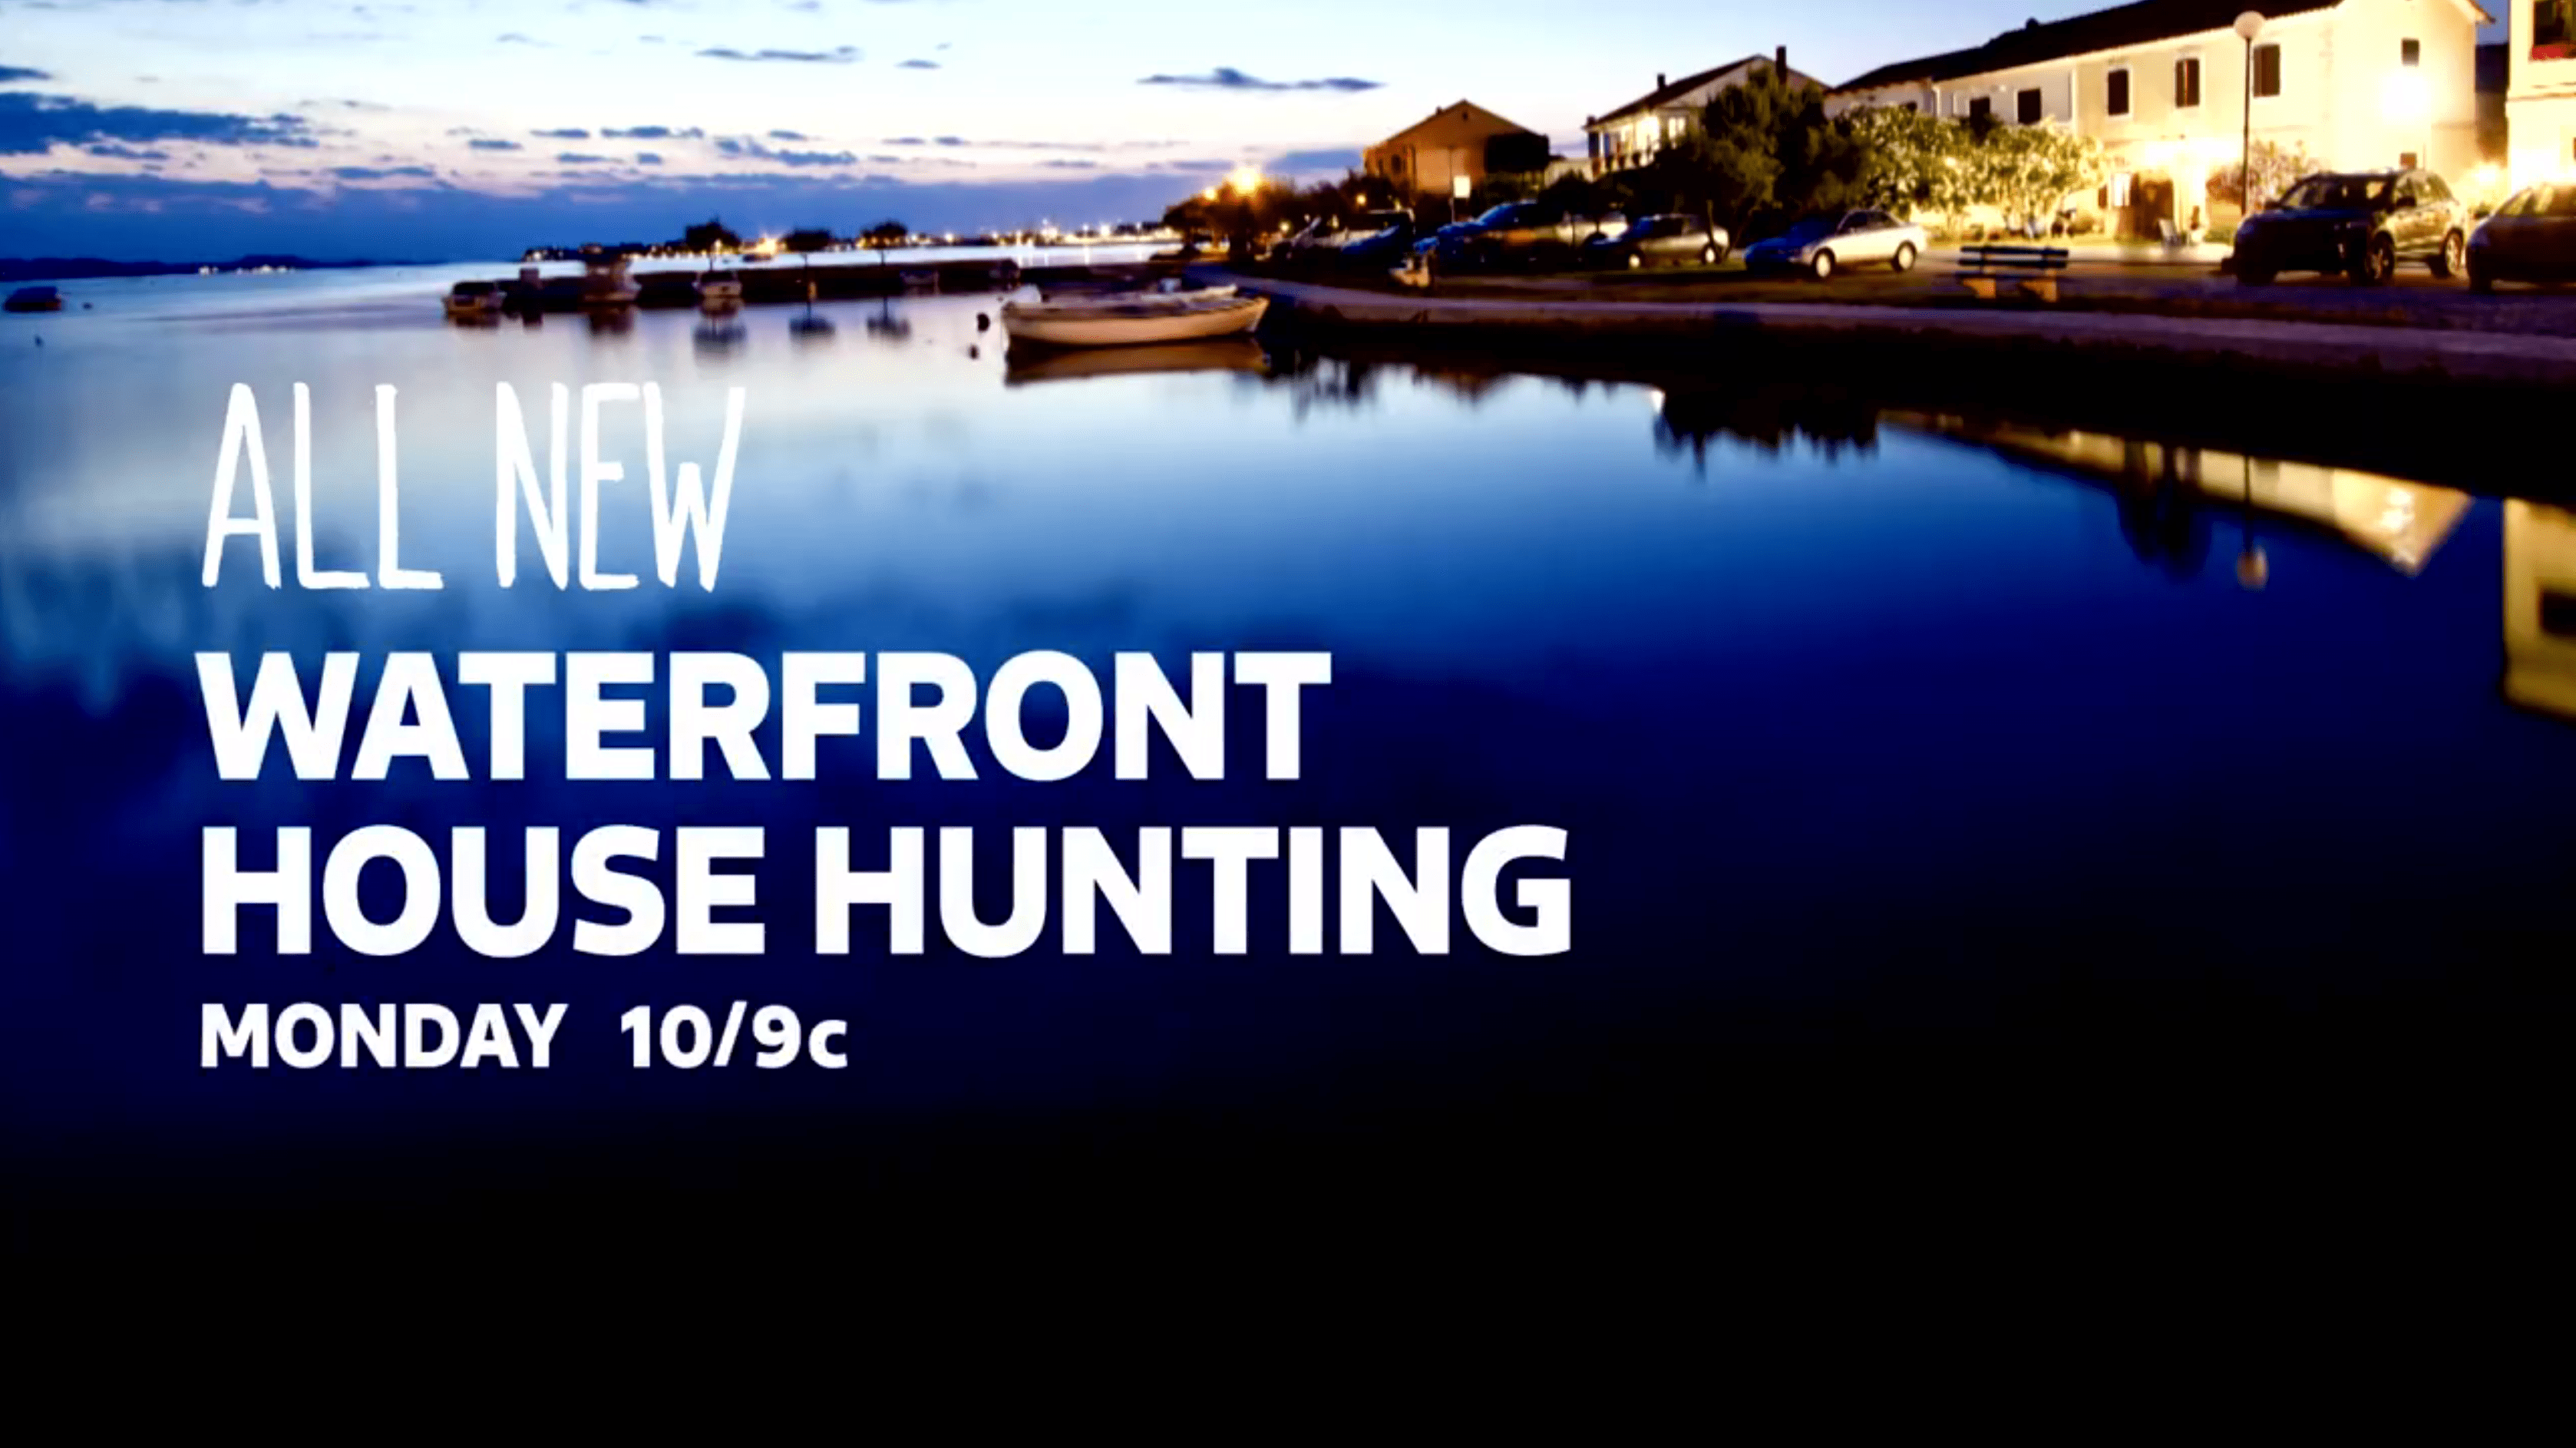 How Fake is Waterfront House Hunting?